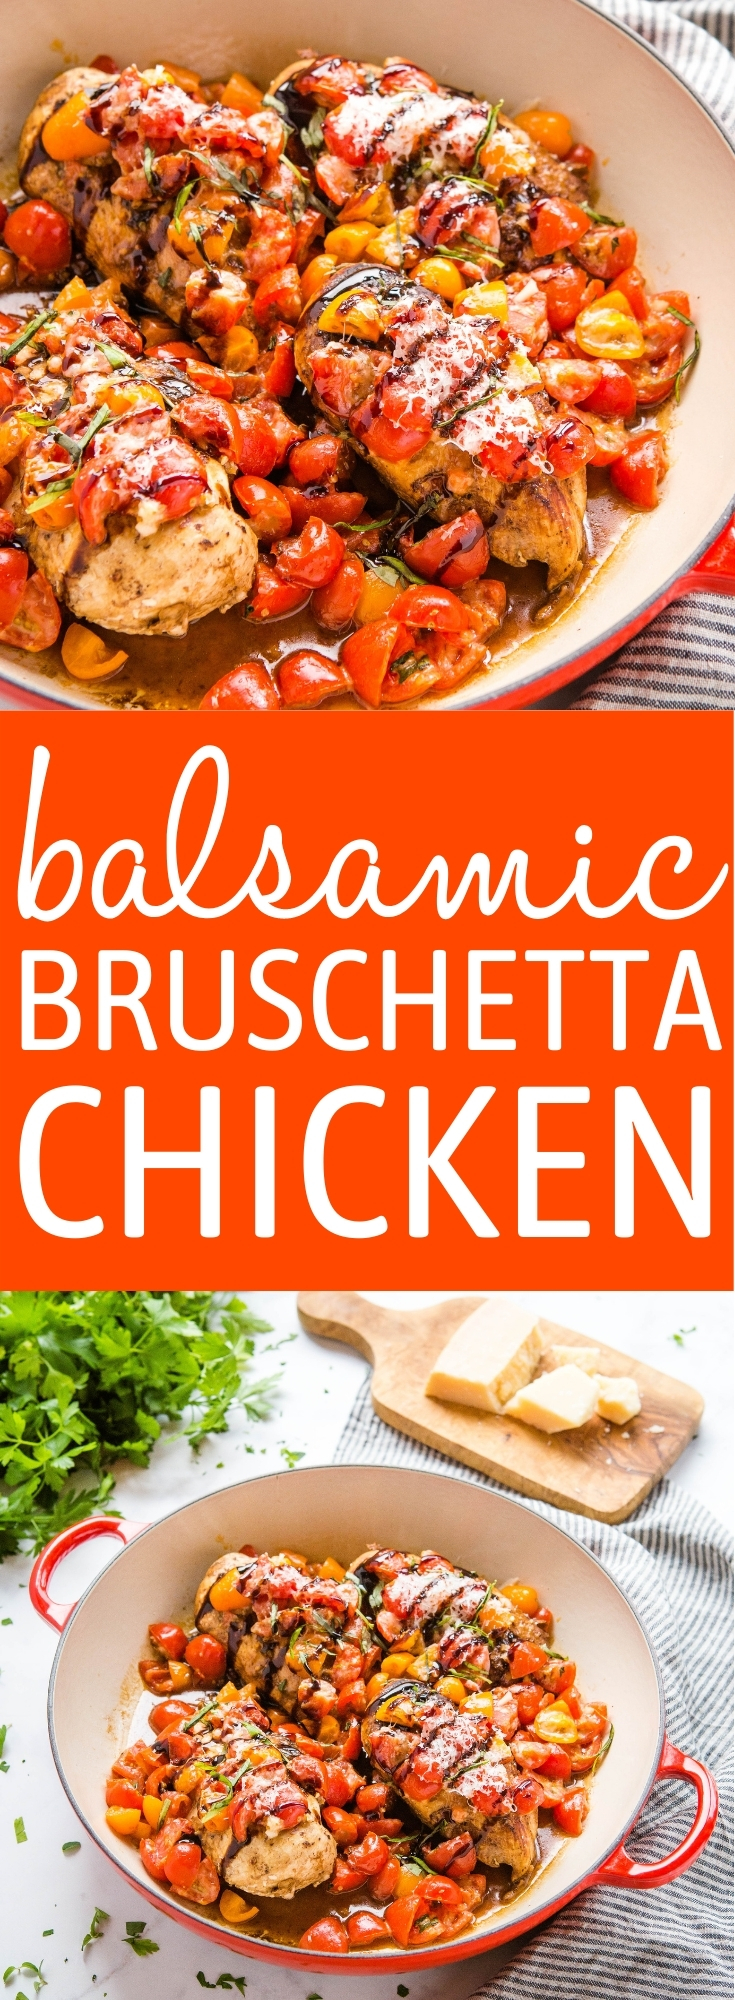 This Baked Balsamic Bruschetta Chicken is a delicious low carb main dish made in one pan in under 35 minutes! Juicy chicken breasts, fresh tomatoes, parmesan, and balsamic glaze. Recipe from thebusybaker.ca! #balsamic #chicken #tomatoes #lowcarb #keto #parmesan #healthy #health #lowfat via @busybakerblog